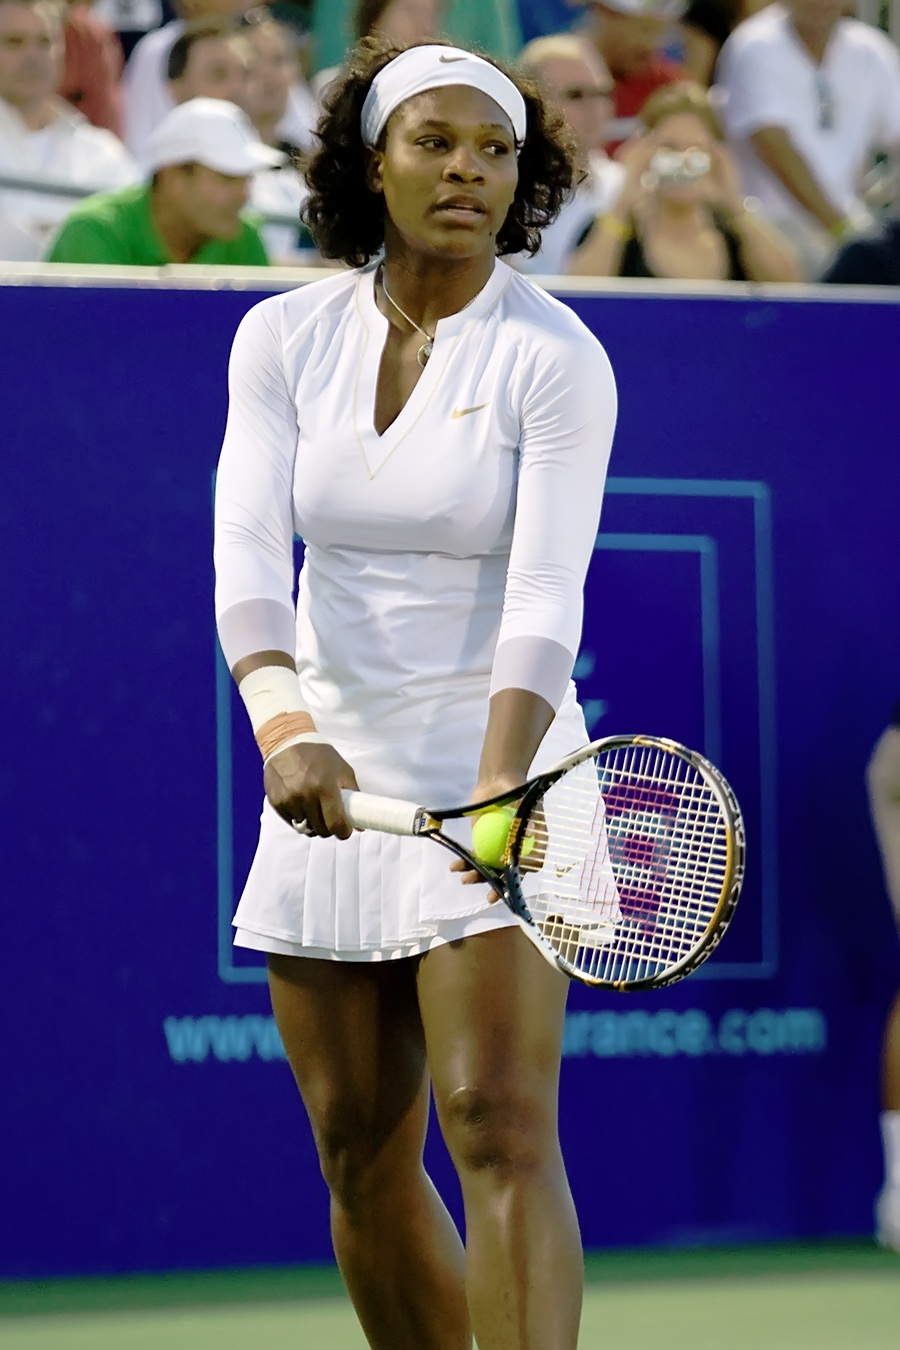 File:Serena Williams July 2008 retouched.jpg - Wikimedia Commons